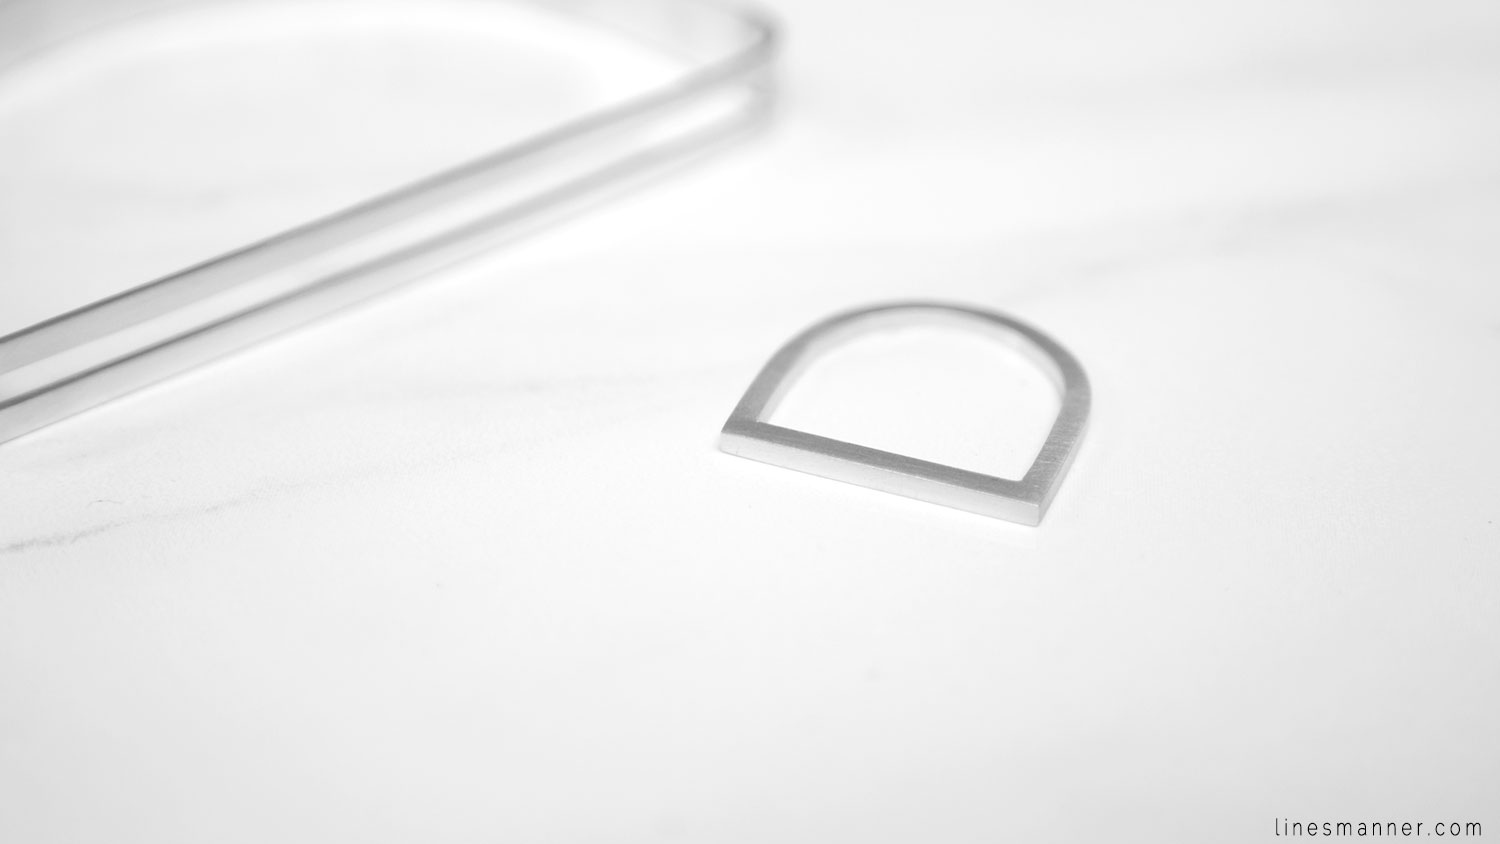 Lines-Manner-Timeless-Modern-Minimalism-Minimal-Designer-Montreal-Designed-Hand_made-Man_Made-Linear-Arc_Jewellery-Montreal-Ring-Bracelet-Essentials-Jewelry-Jewellery-Quality-Fresh-Brightly-1